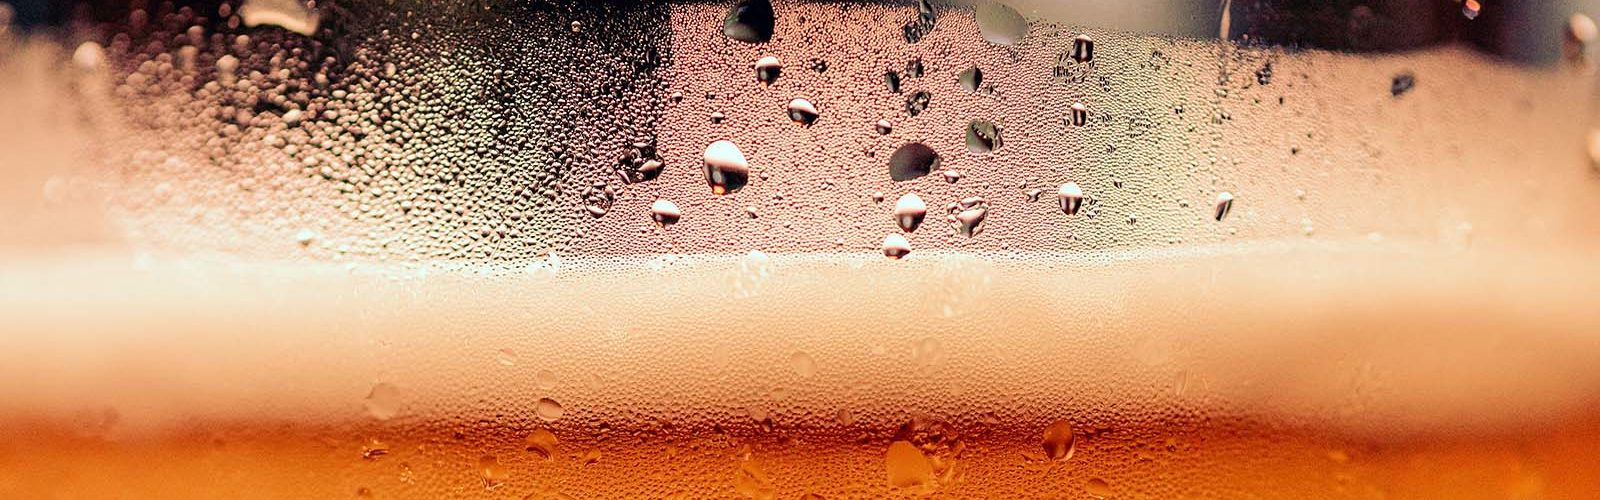 beers-article